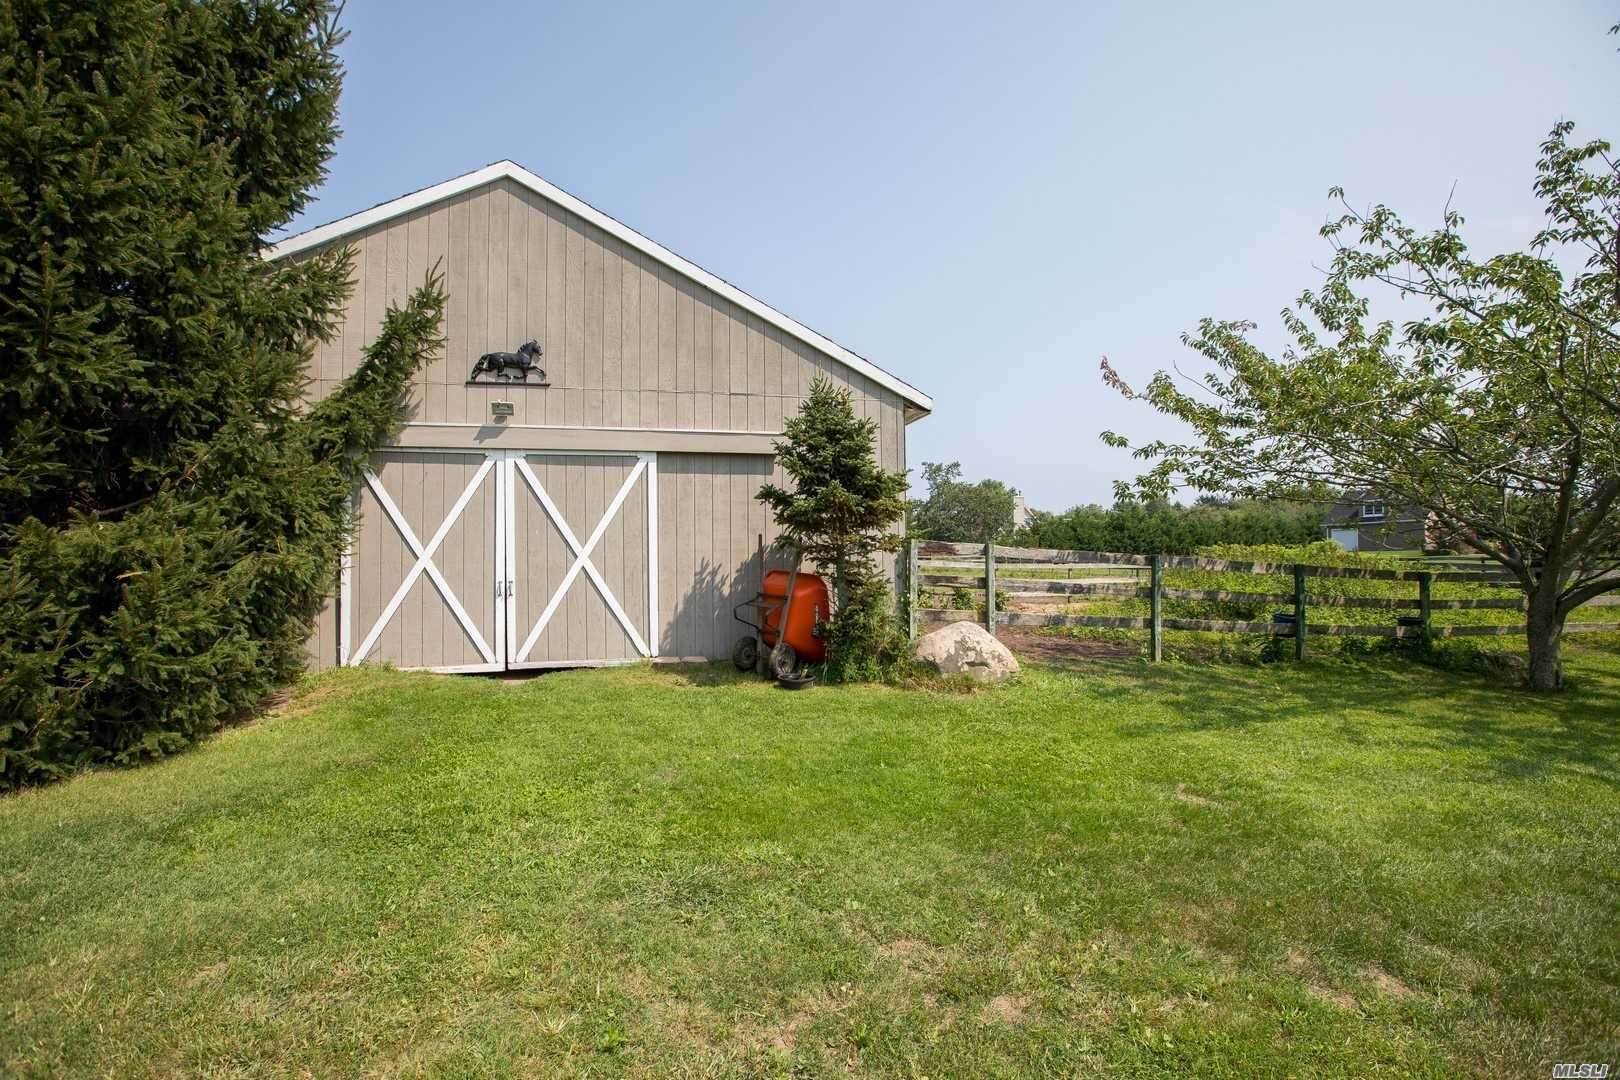 Beautiful 2.59 Acres In Bucolic Southold With 3 Outbuildings Including A 30'X 36' Barn With 3 Stalls, Fencing And Bonus Lovely 3 Bedroom Home! Relaxed Country Setting With Huge Deck For Entertaining, Room For Your Animals, Gardens, Pool, Tennis And More! A Wonderful Foundation For Your North Fork Dreams.